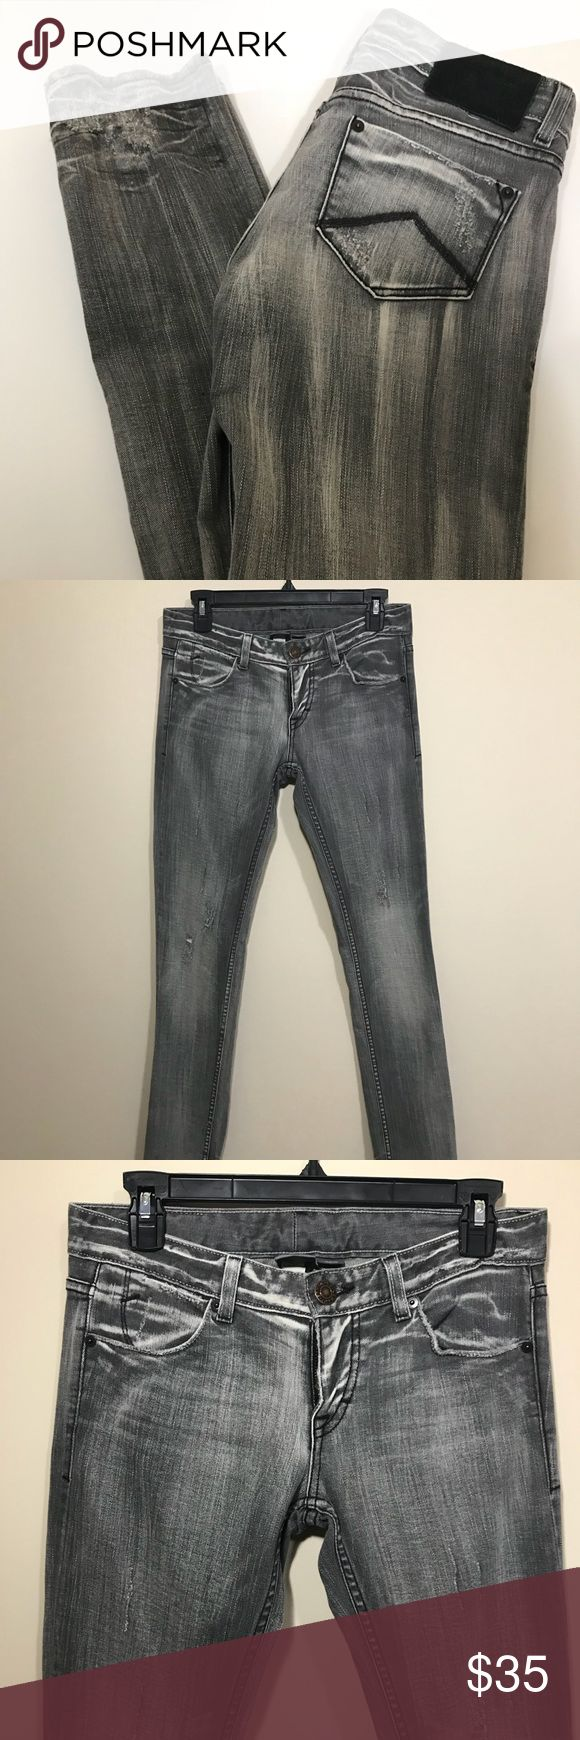 "Armani exchange grey jeans women 4 A/X Armani exchange Grey black distressed destroyed denim jeans. Women 4. Distressed on legs and at back bottom hem. Gently used.  Rise 7"" Inseam 32"" Length 40"" 209-D A/X Armani Exchange Jeans Straight Leg"